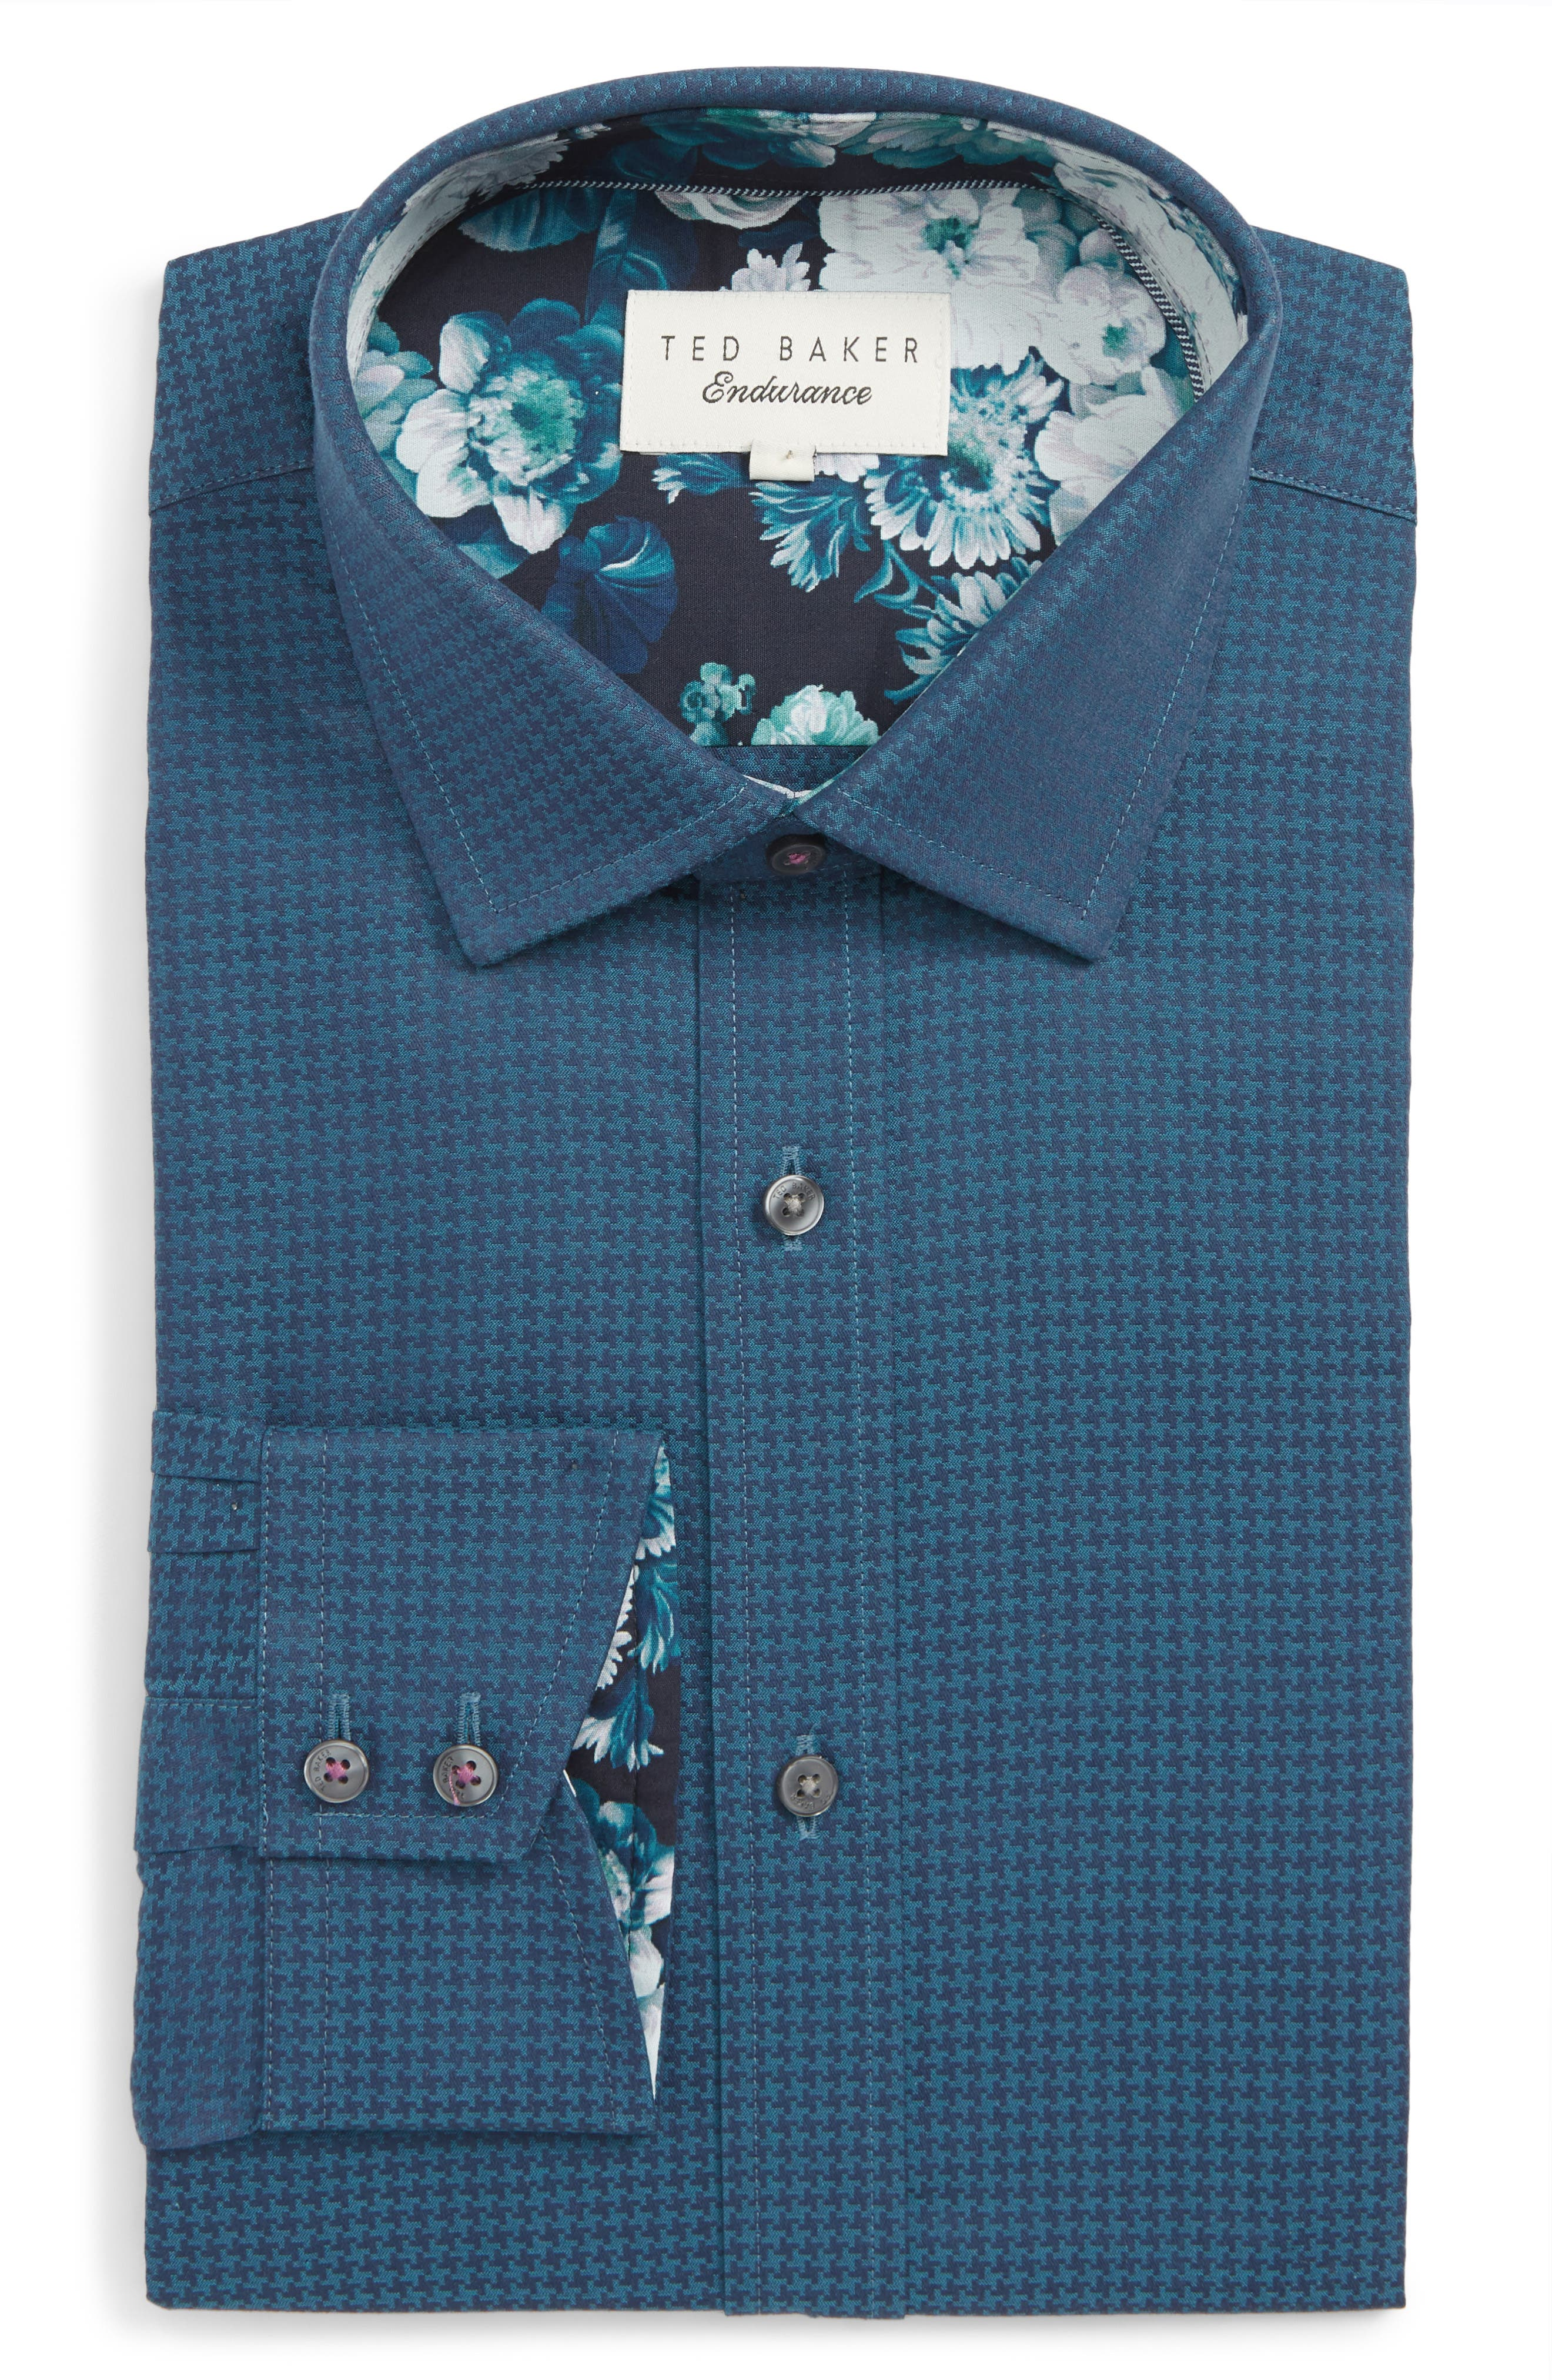 Carmz Trim Fit Houndstooth Dress Shirt,                             Main thumbnail 1, color,                             TEAL/ BLUE